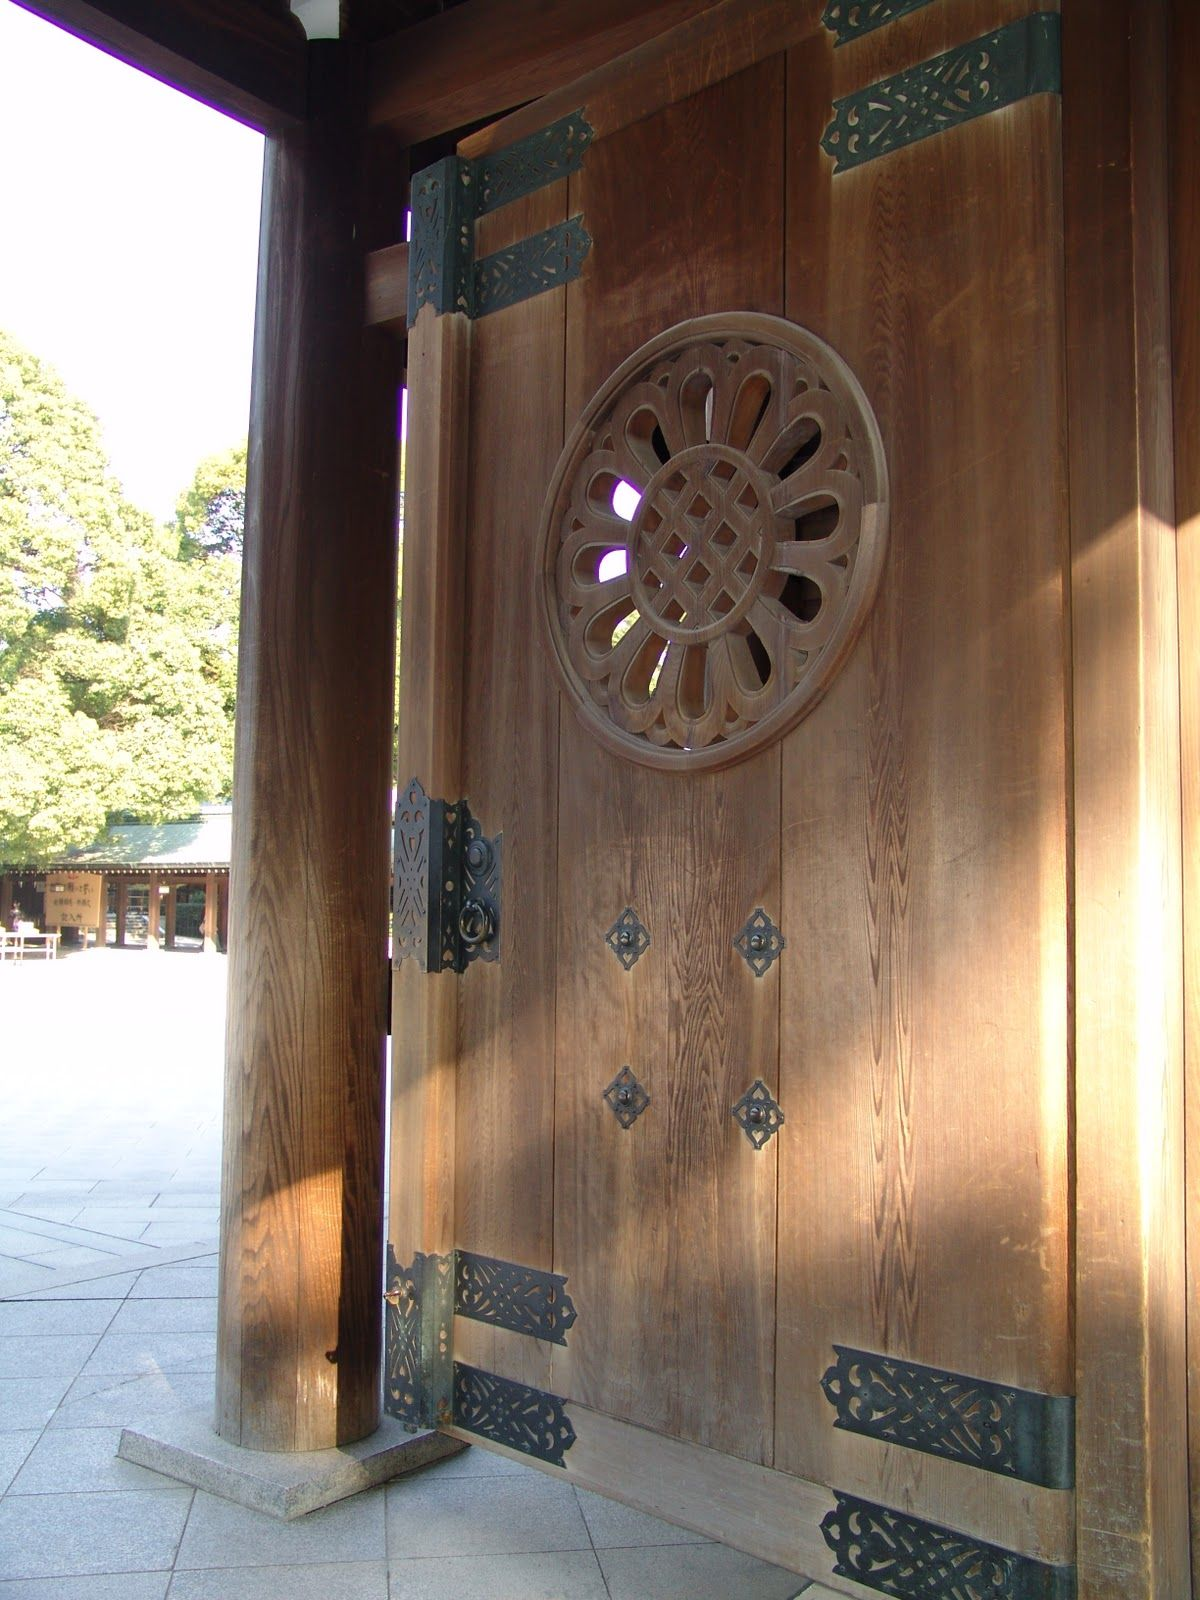 Japanese Obsession Doors and Gates!